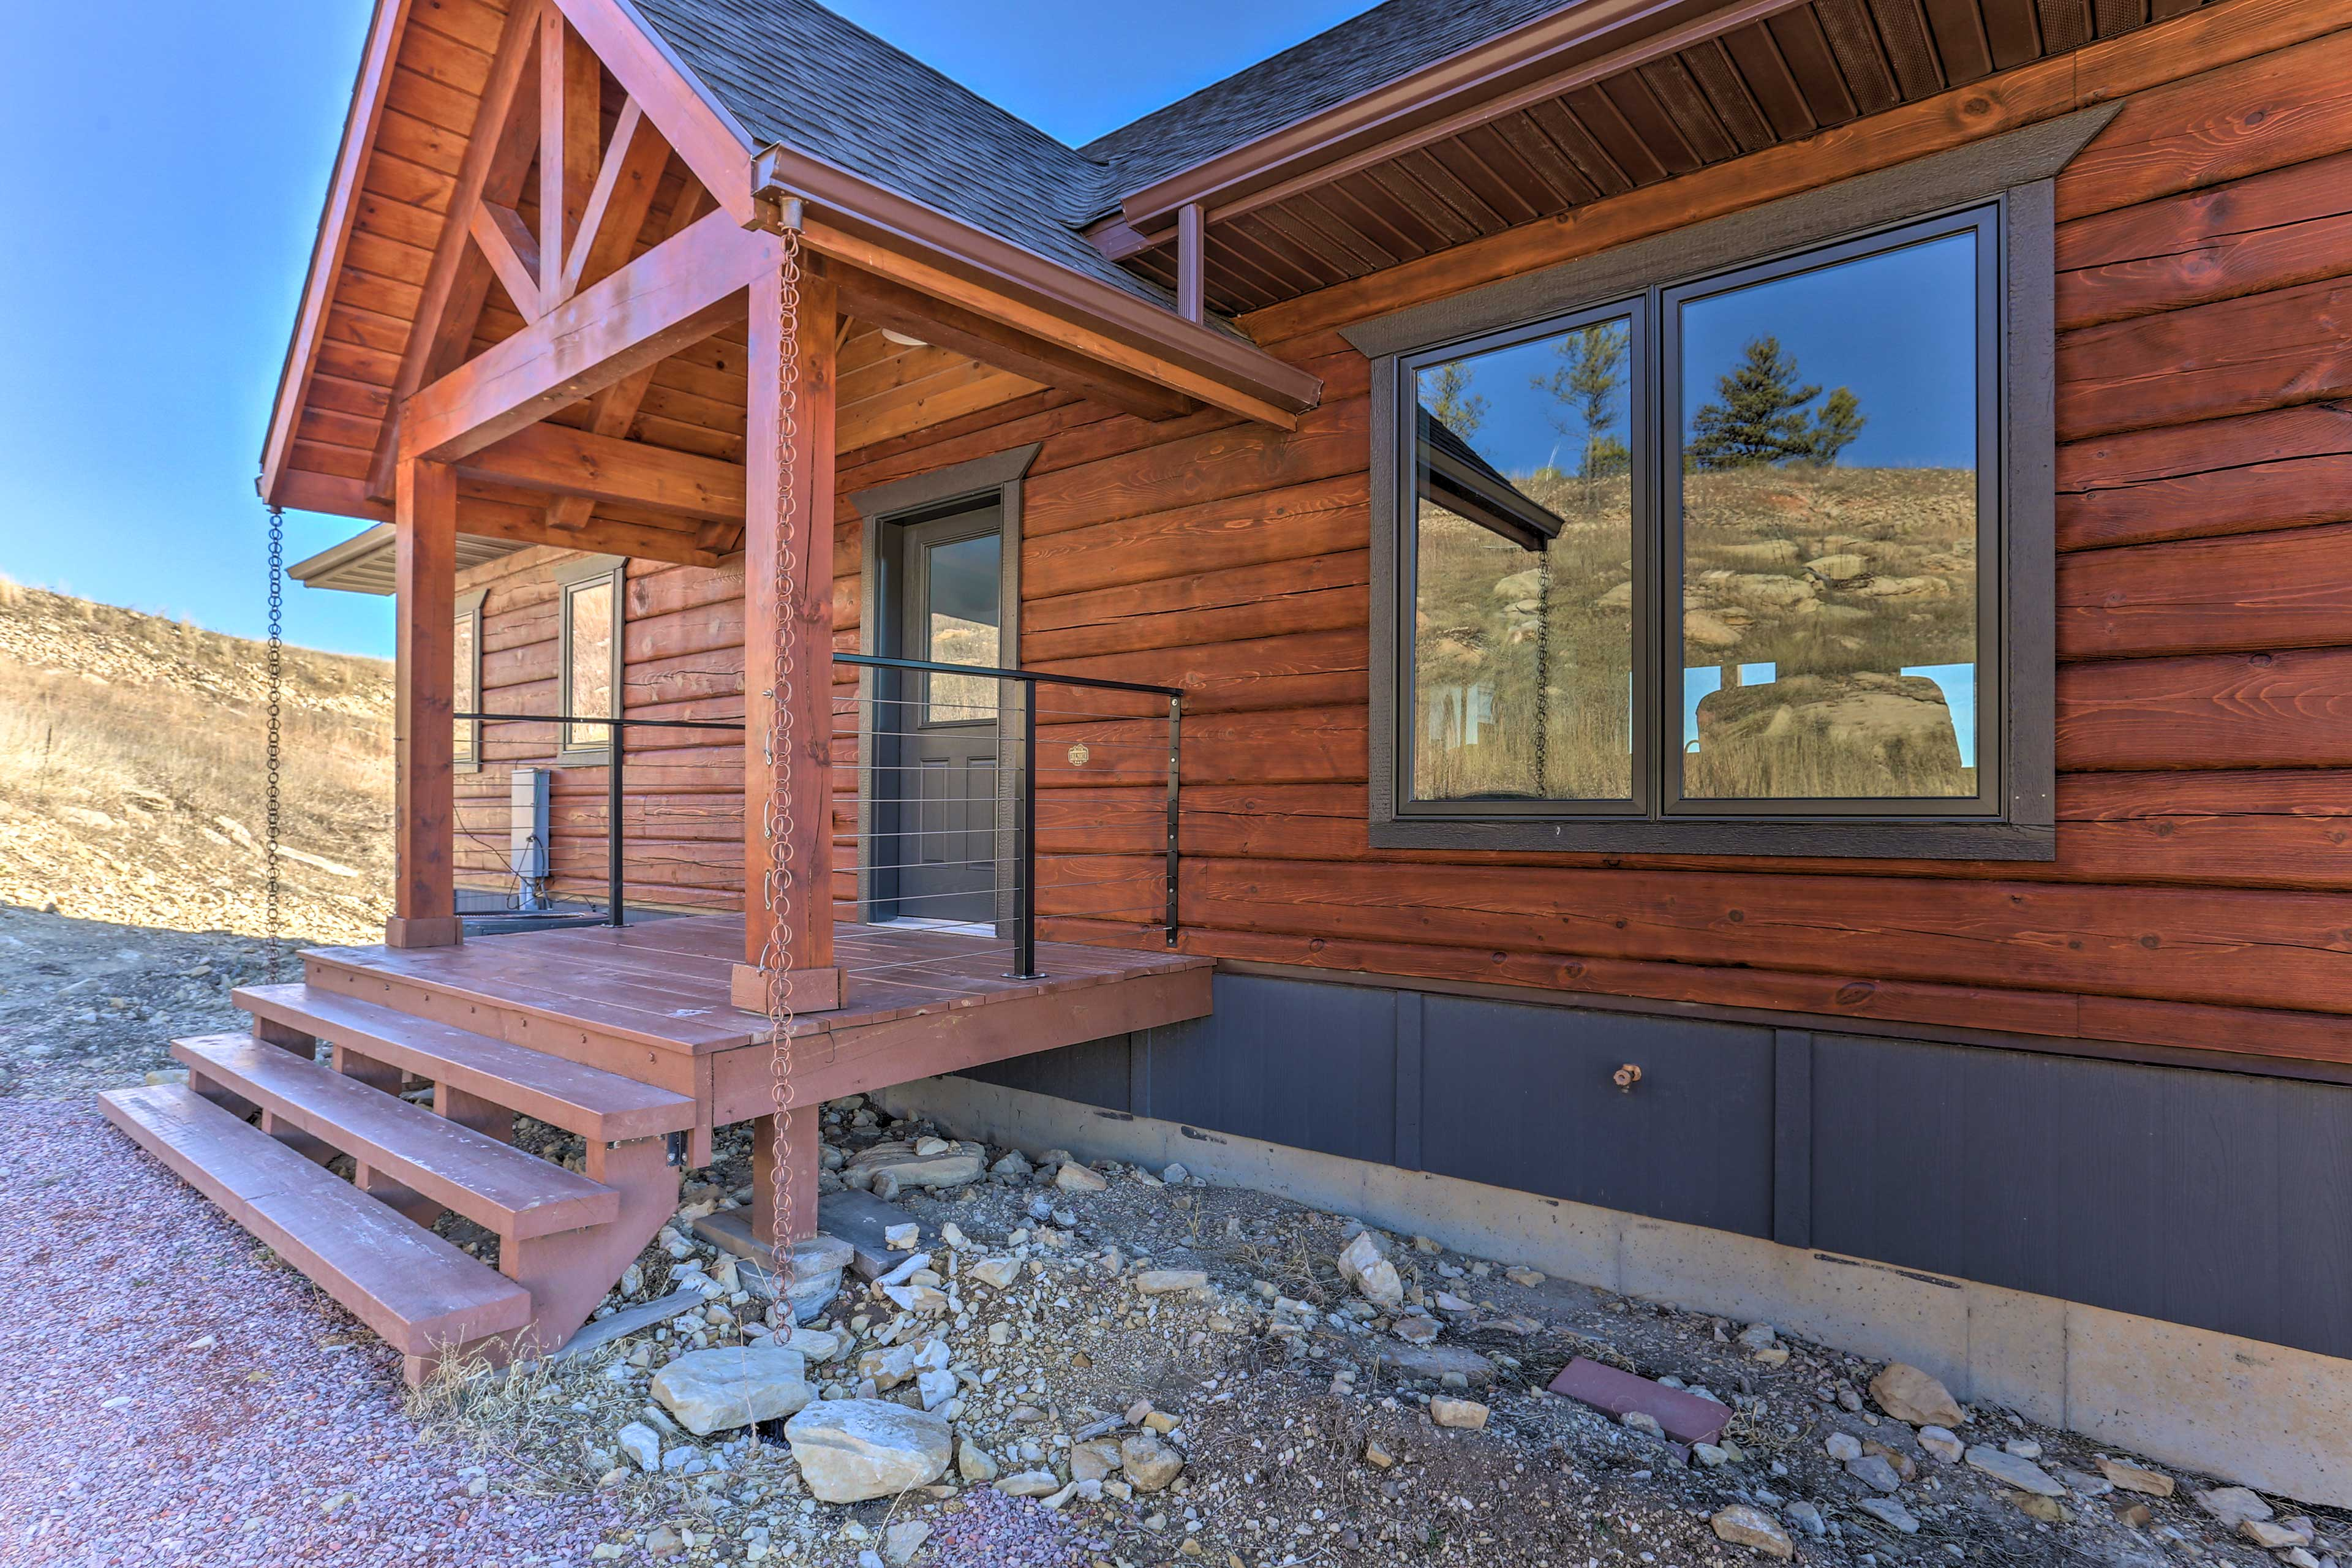 This charming cabin is set in a peaceful Black Hills setting.